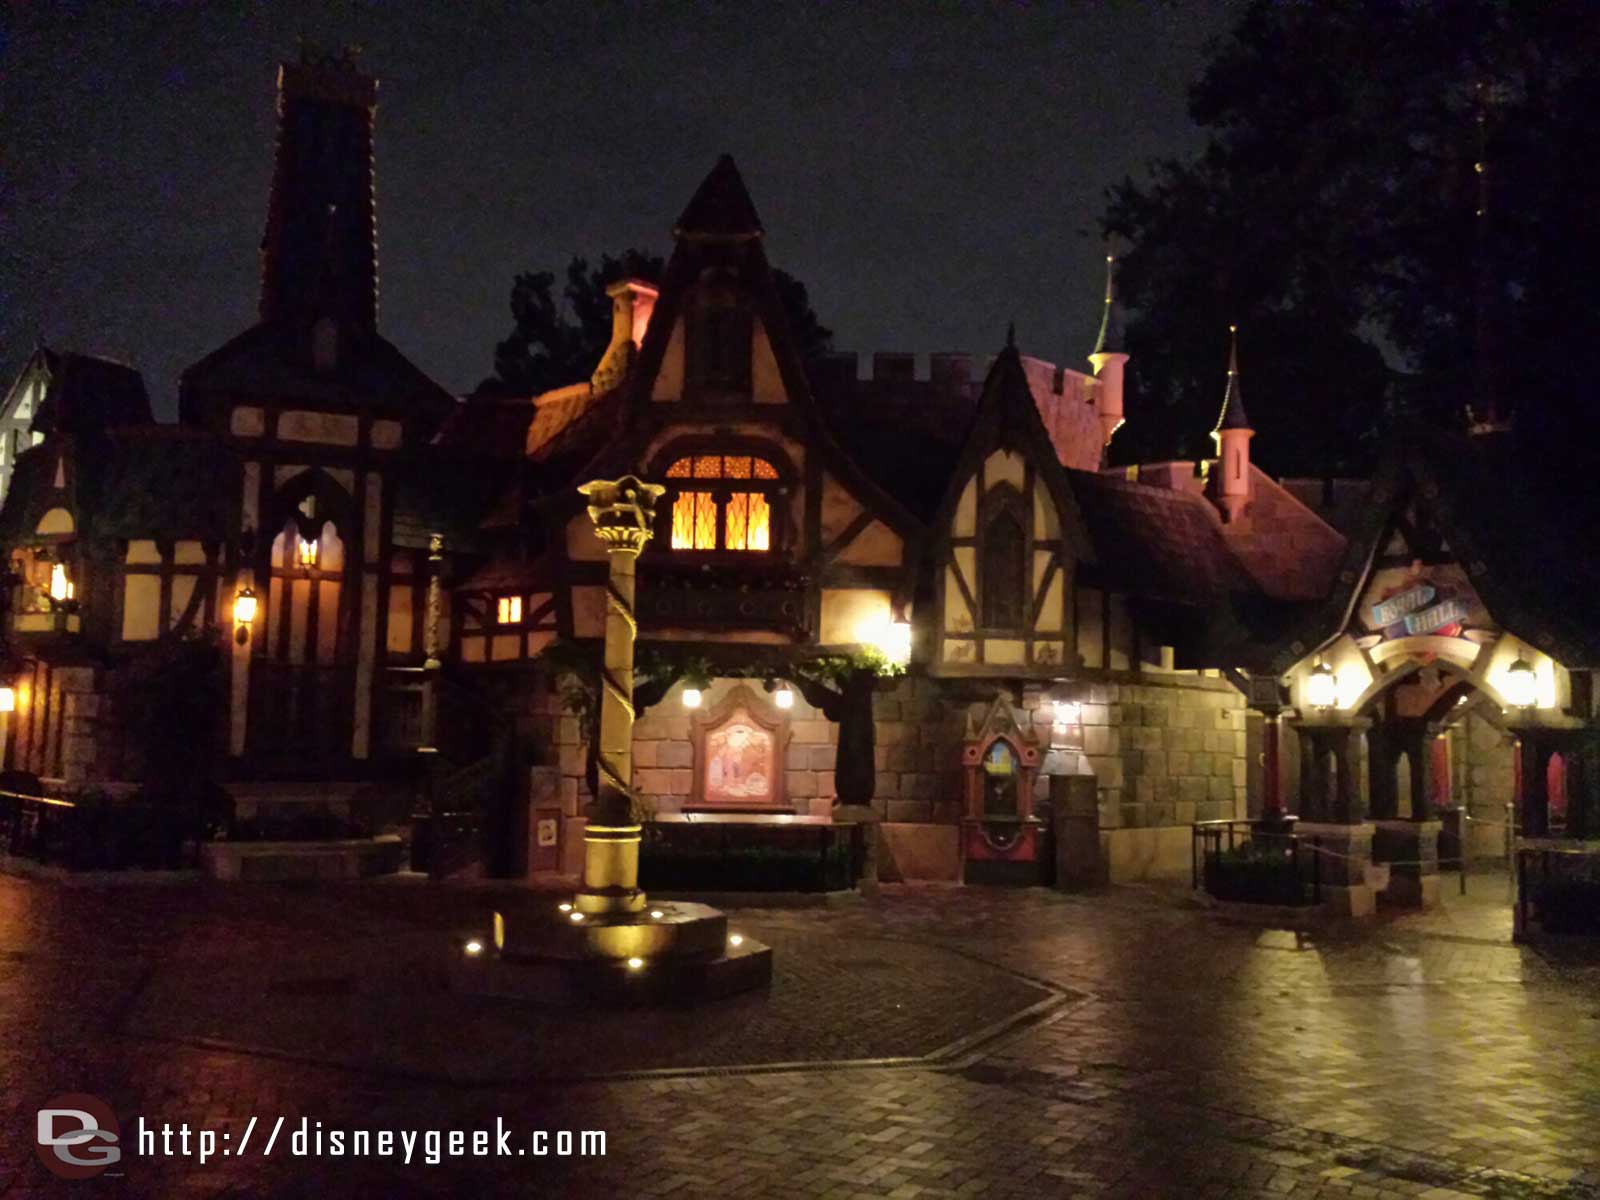 Passing through a quiet Fantasy Faire #Disneyland